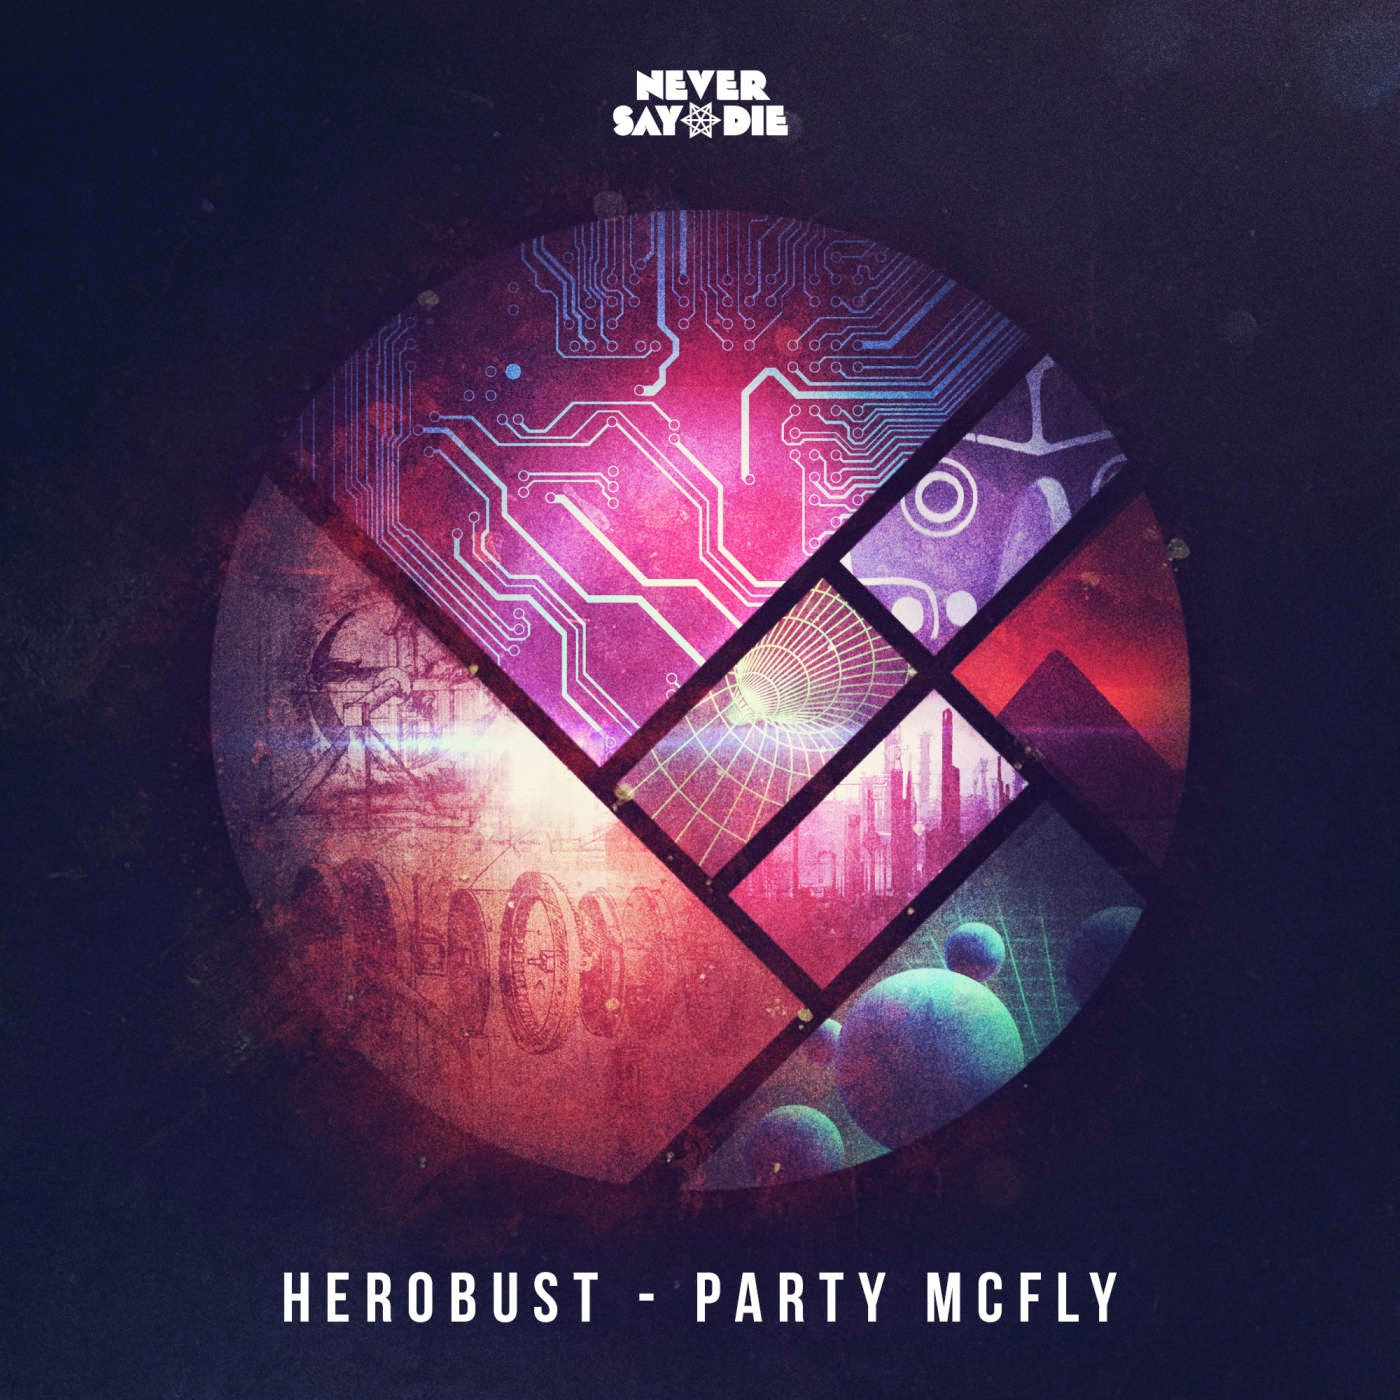 heRobust - Party Mcfly - Single Cover